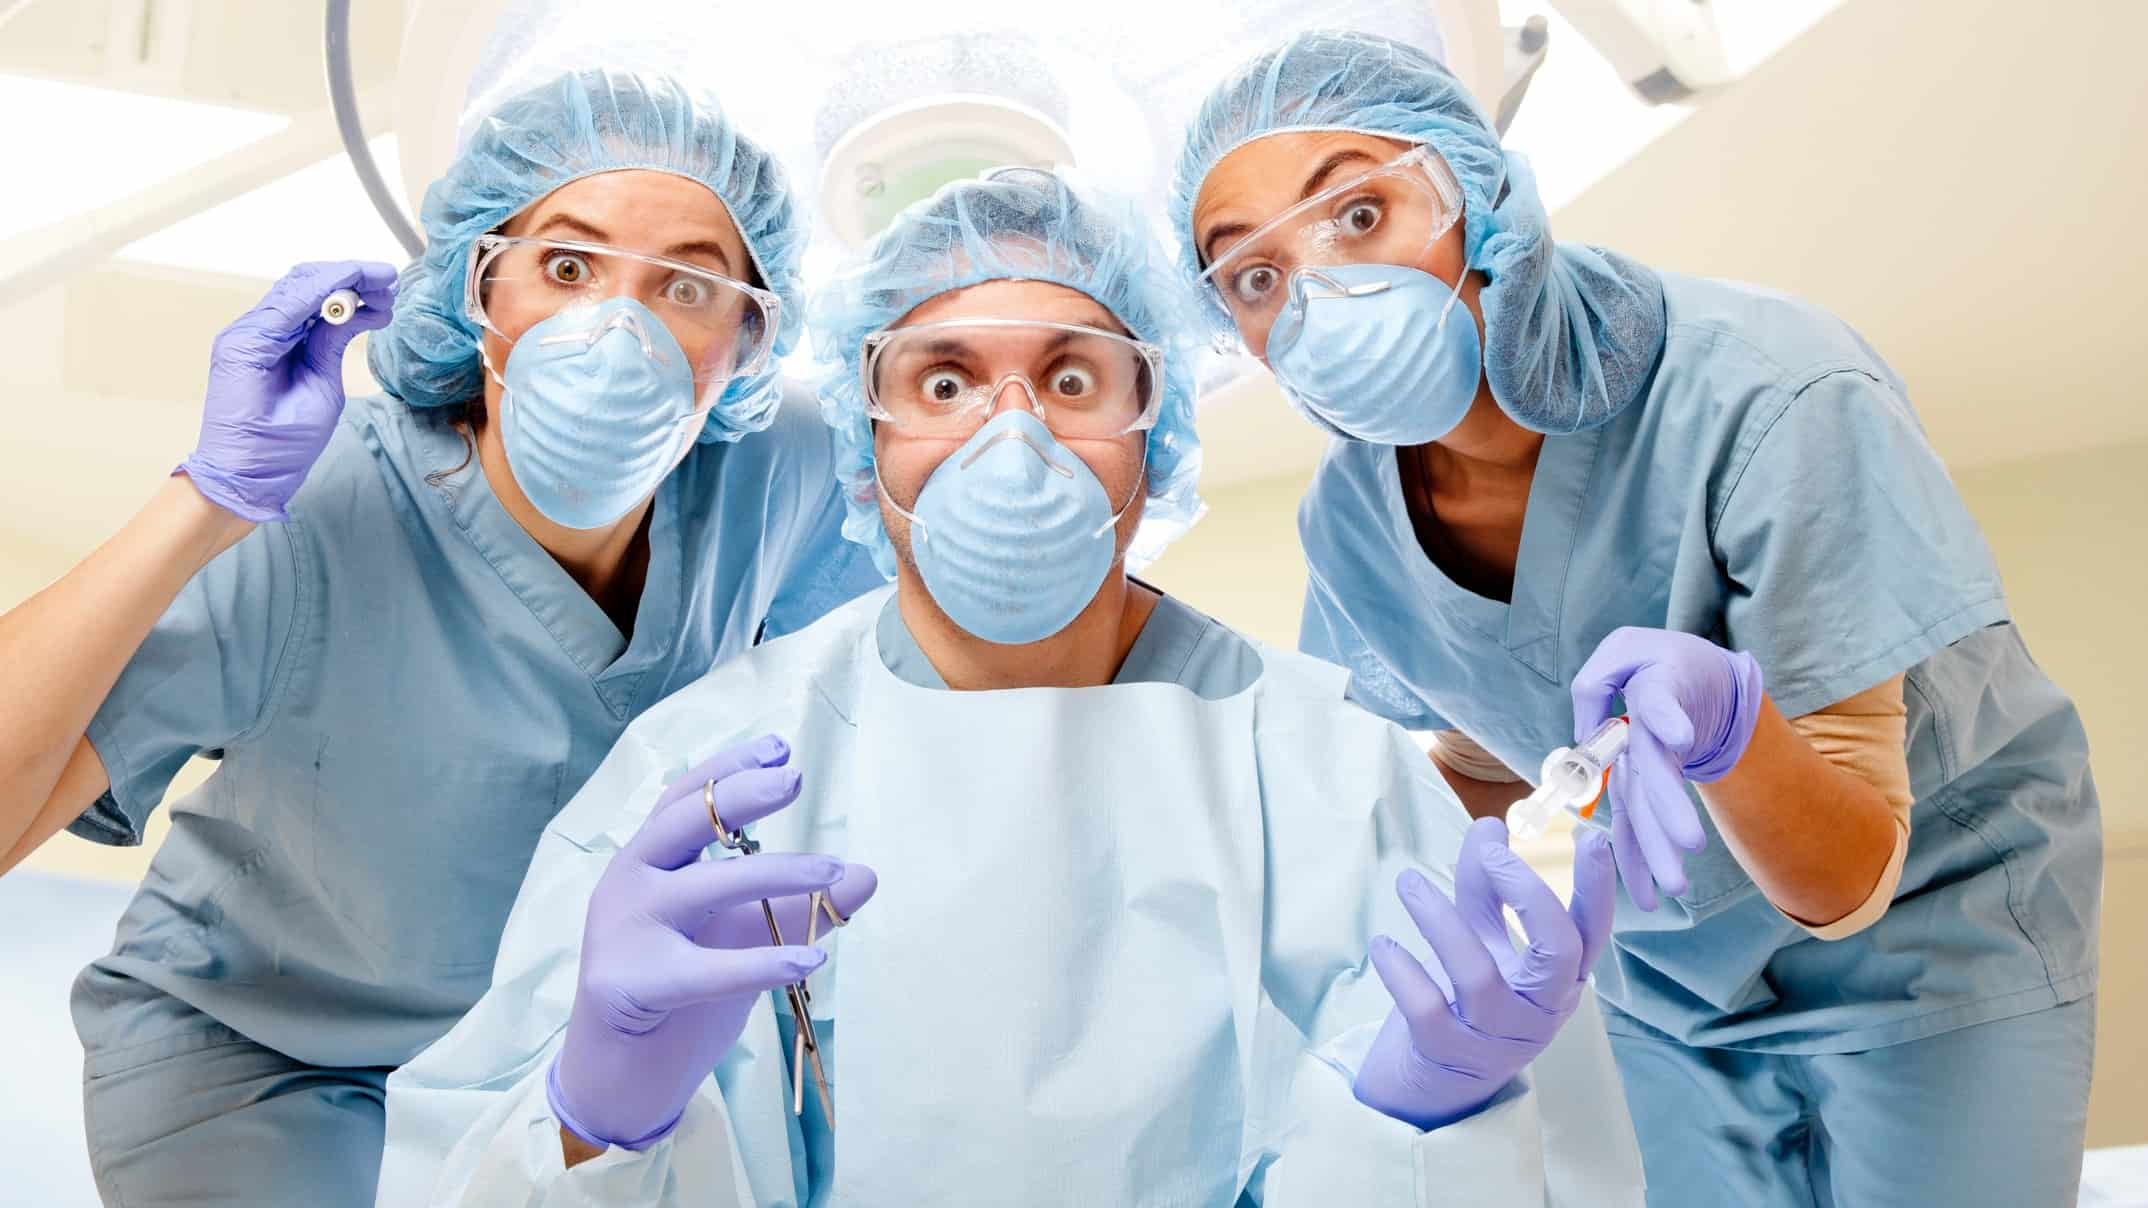 comical medical team wearing masks and scrubs look wide-eyed at the camera, medical shares